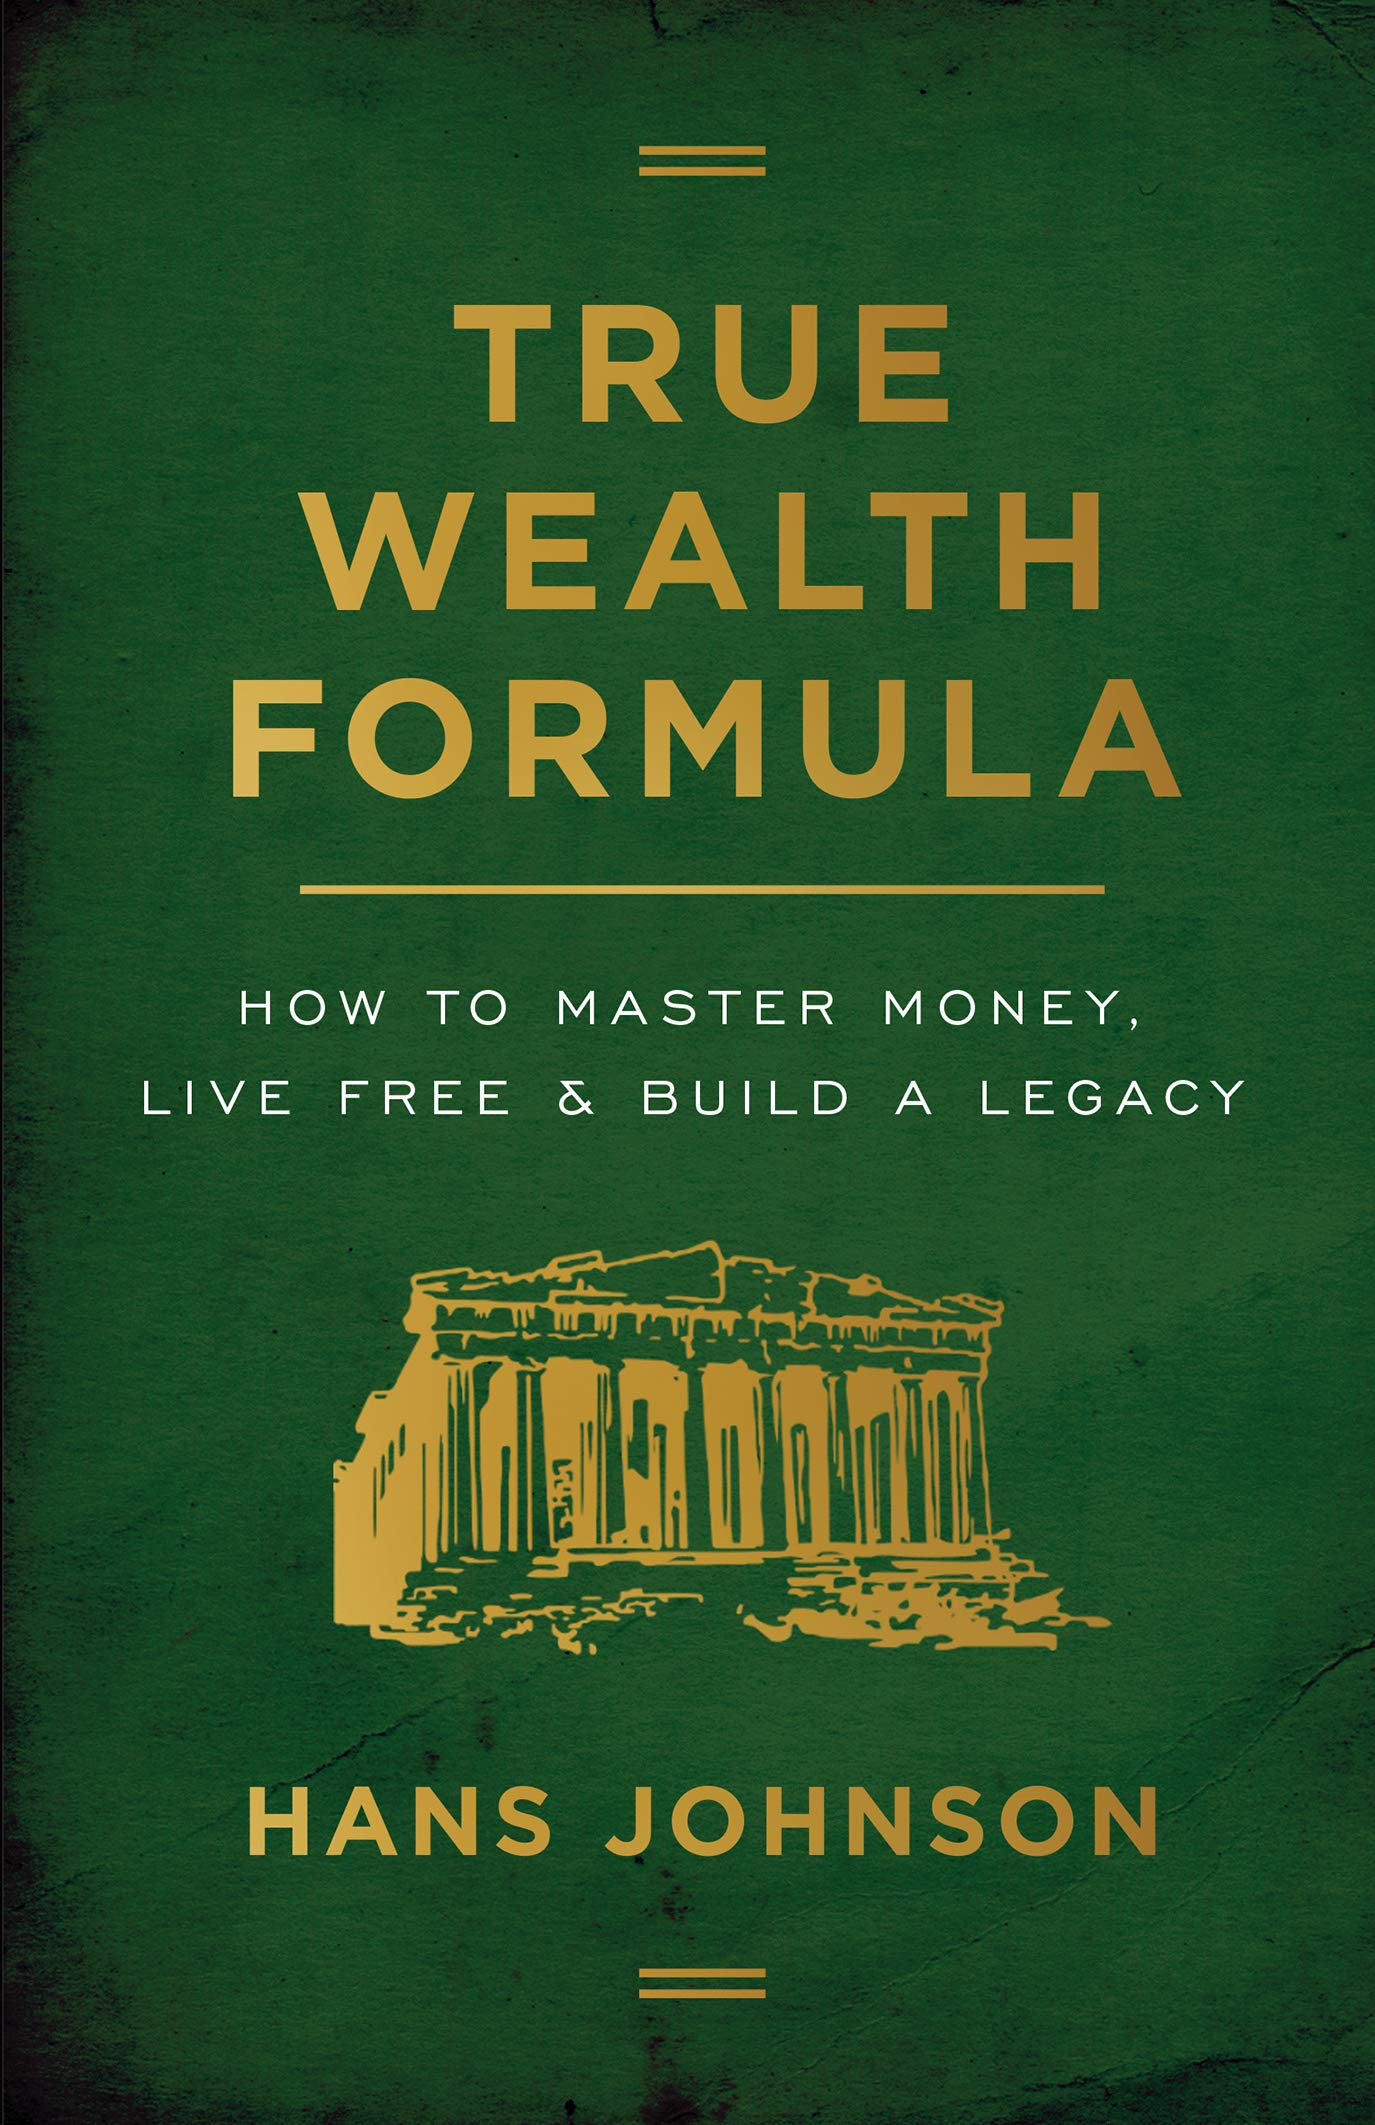 Image OfTrue Wealth Formula: How To Master Money, Live Free & Build A Legacy